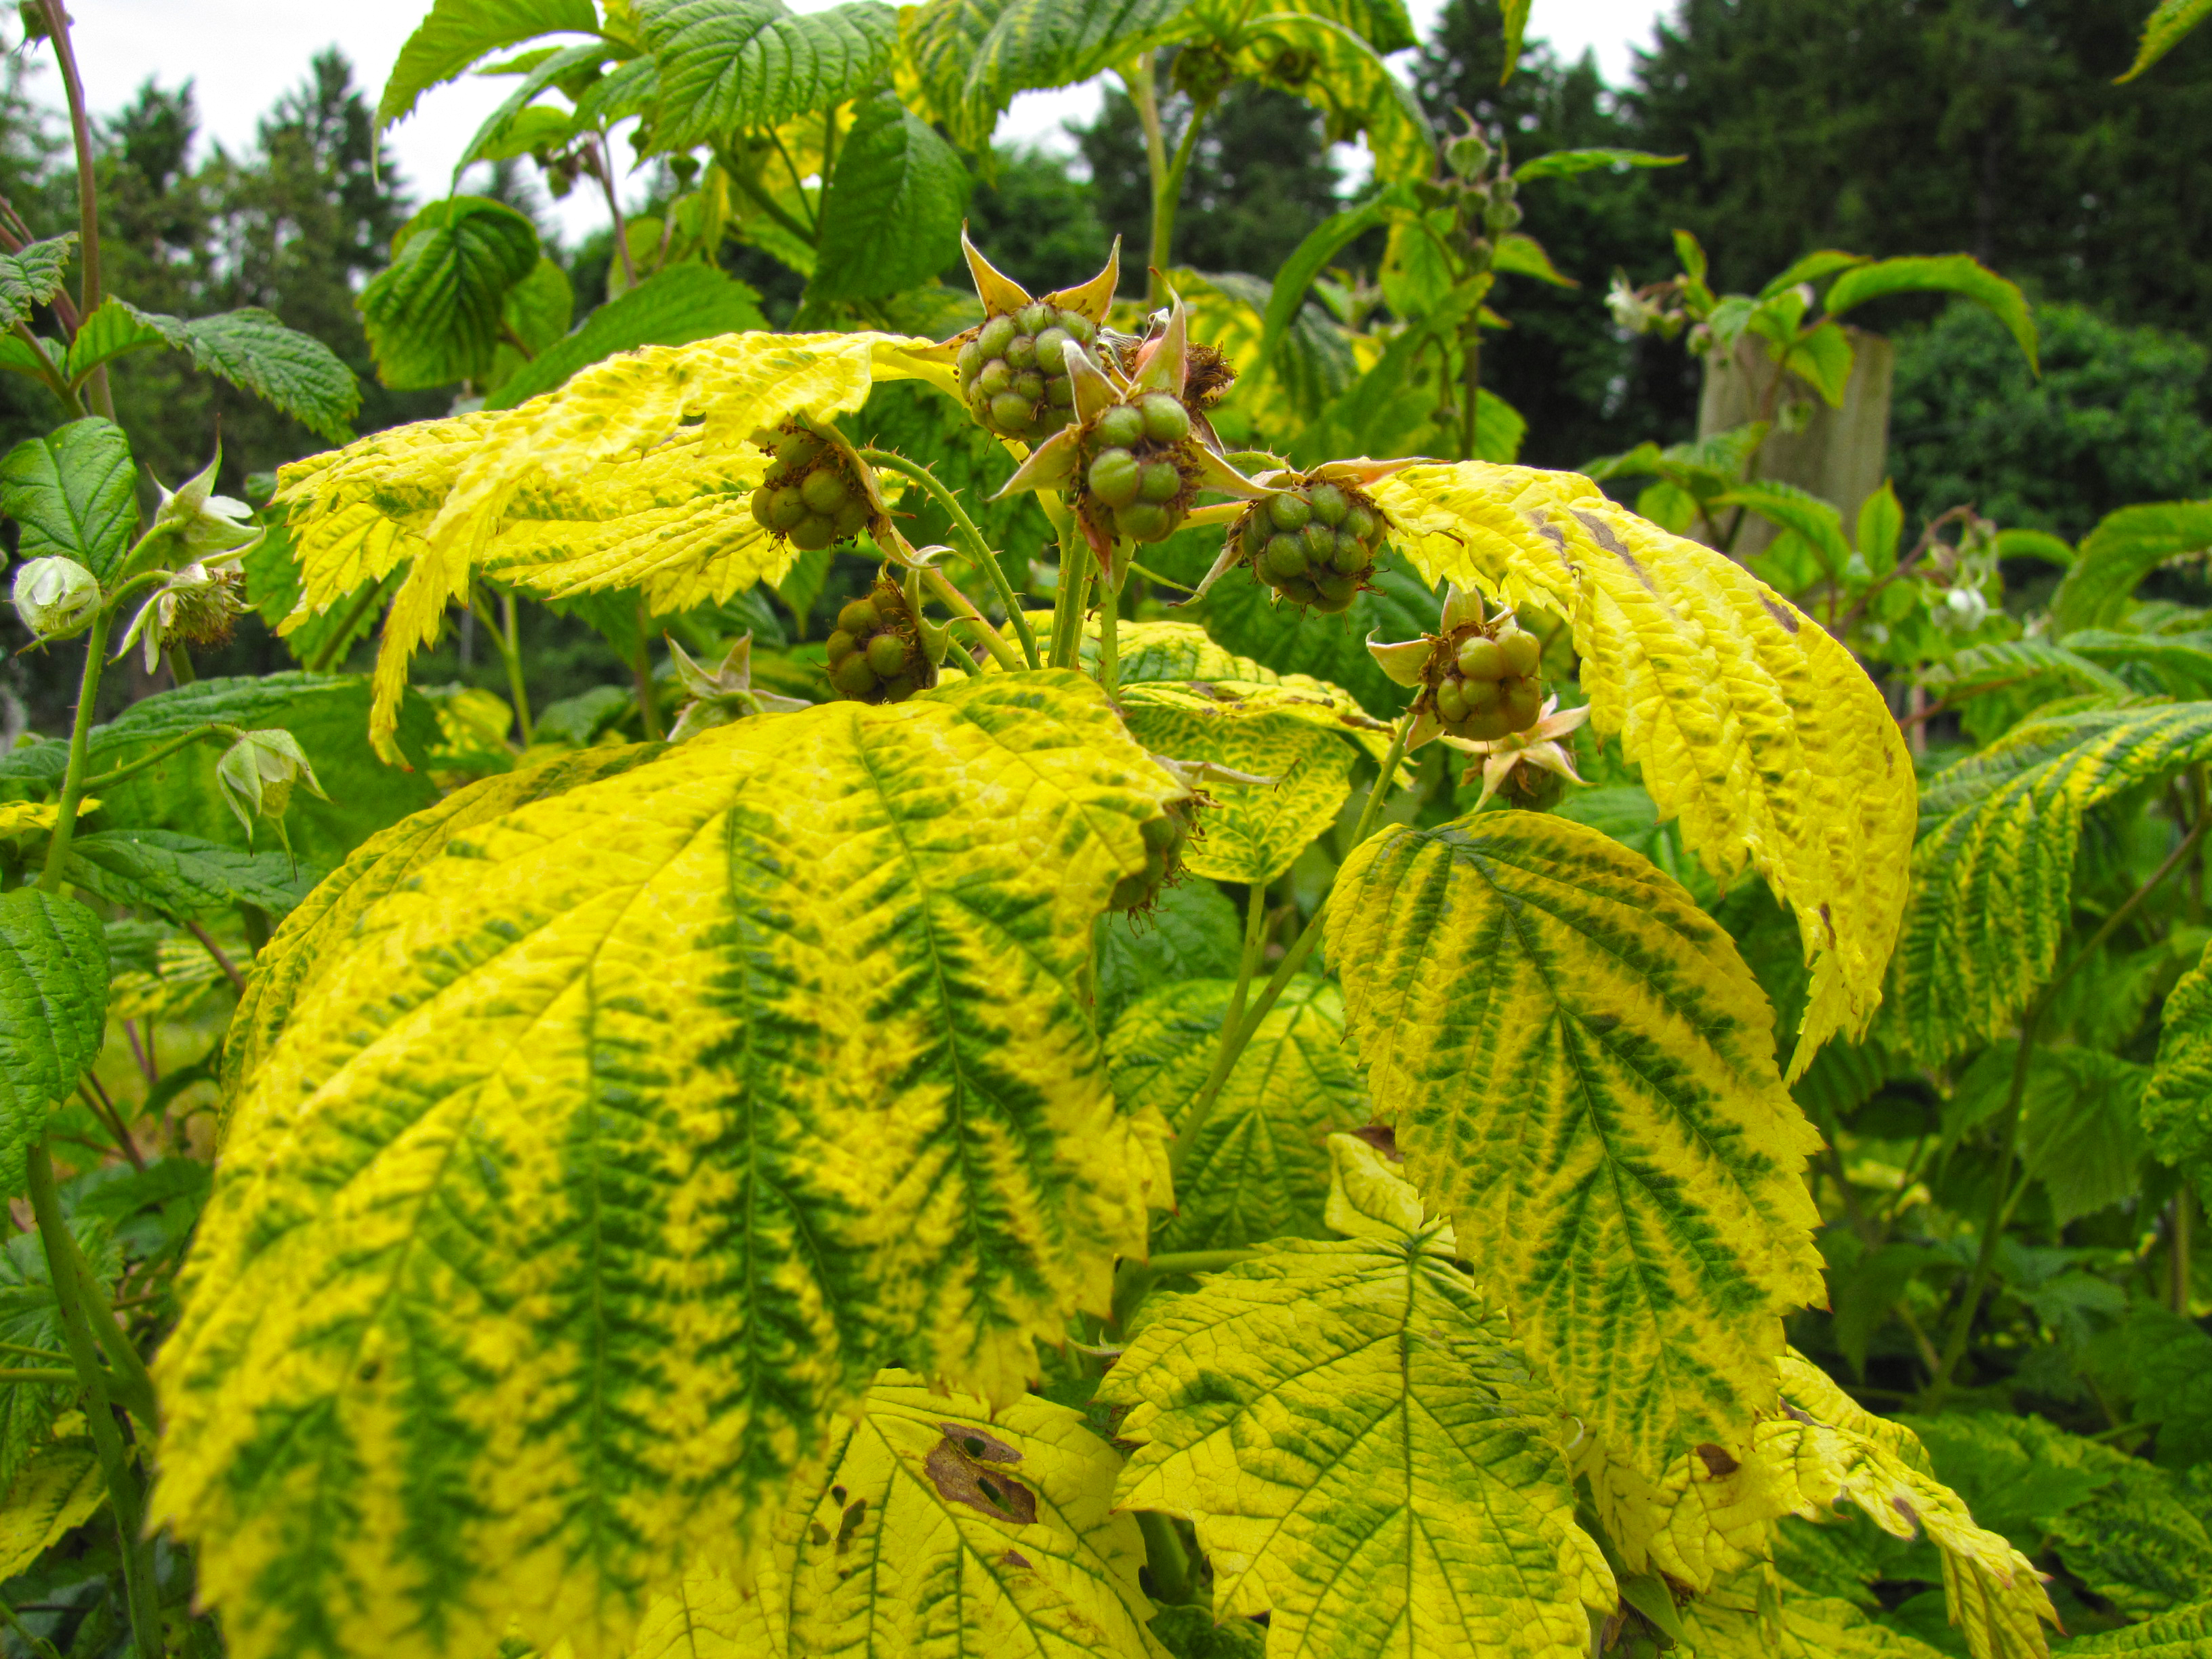 yellow leaves with green veins